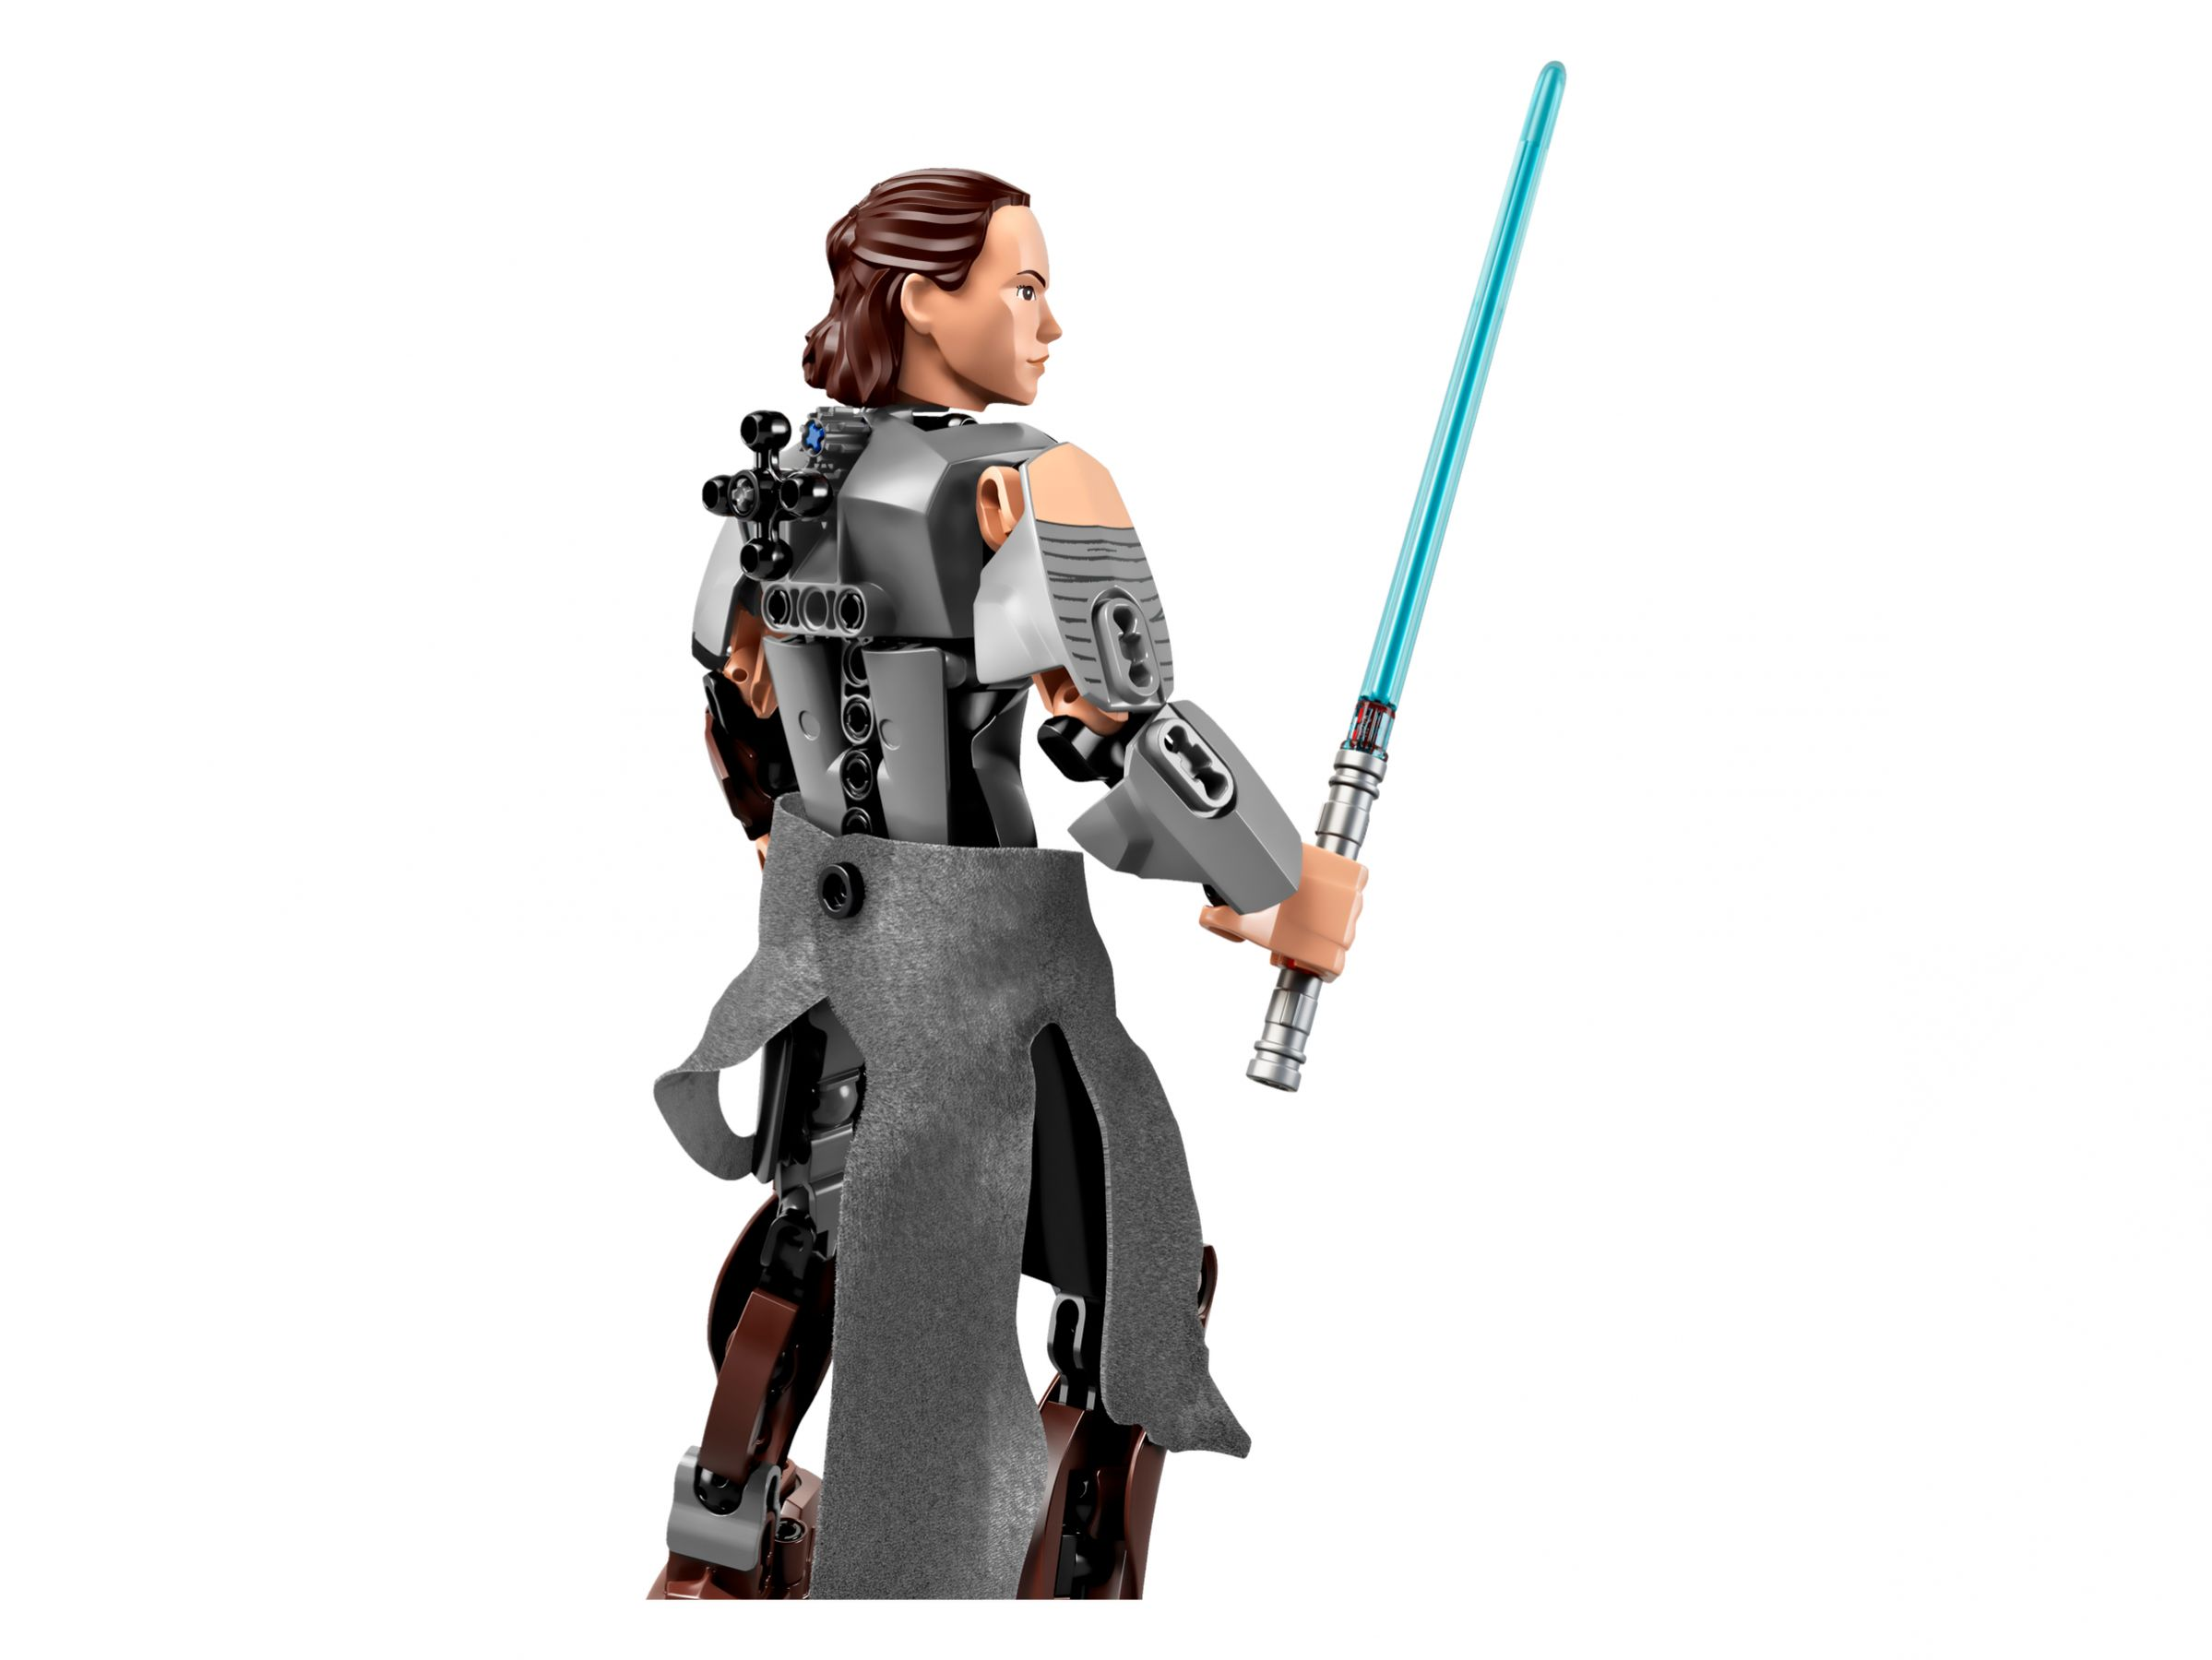 LEGO Star Wars Buildable Figures 75528 Rey LEGO_75528_alt4.jpg